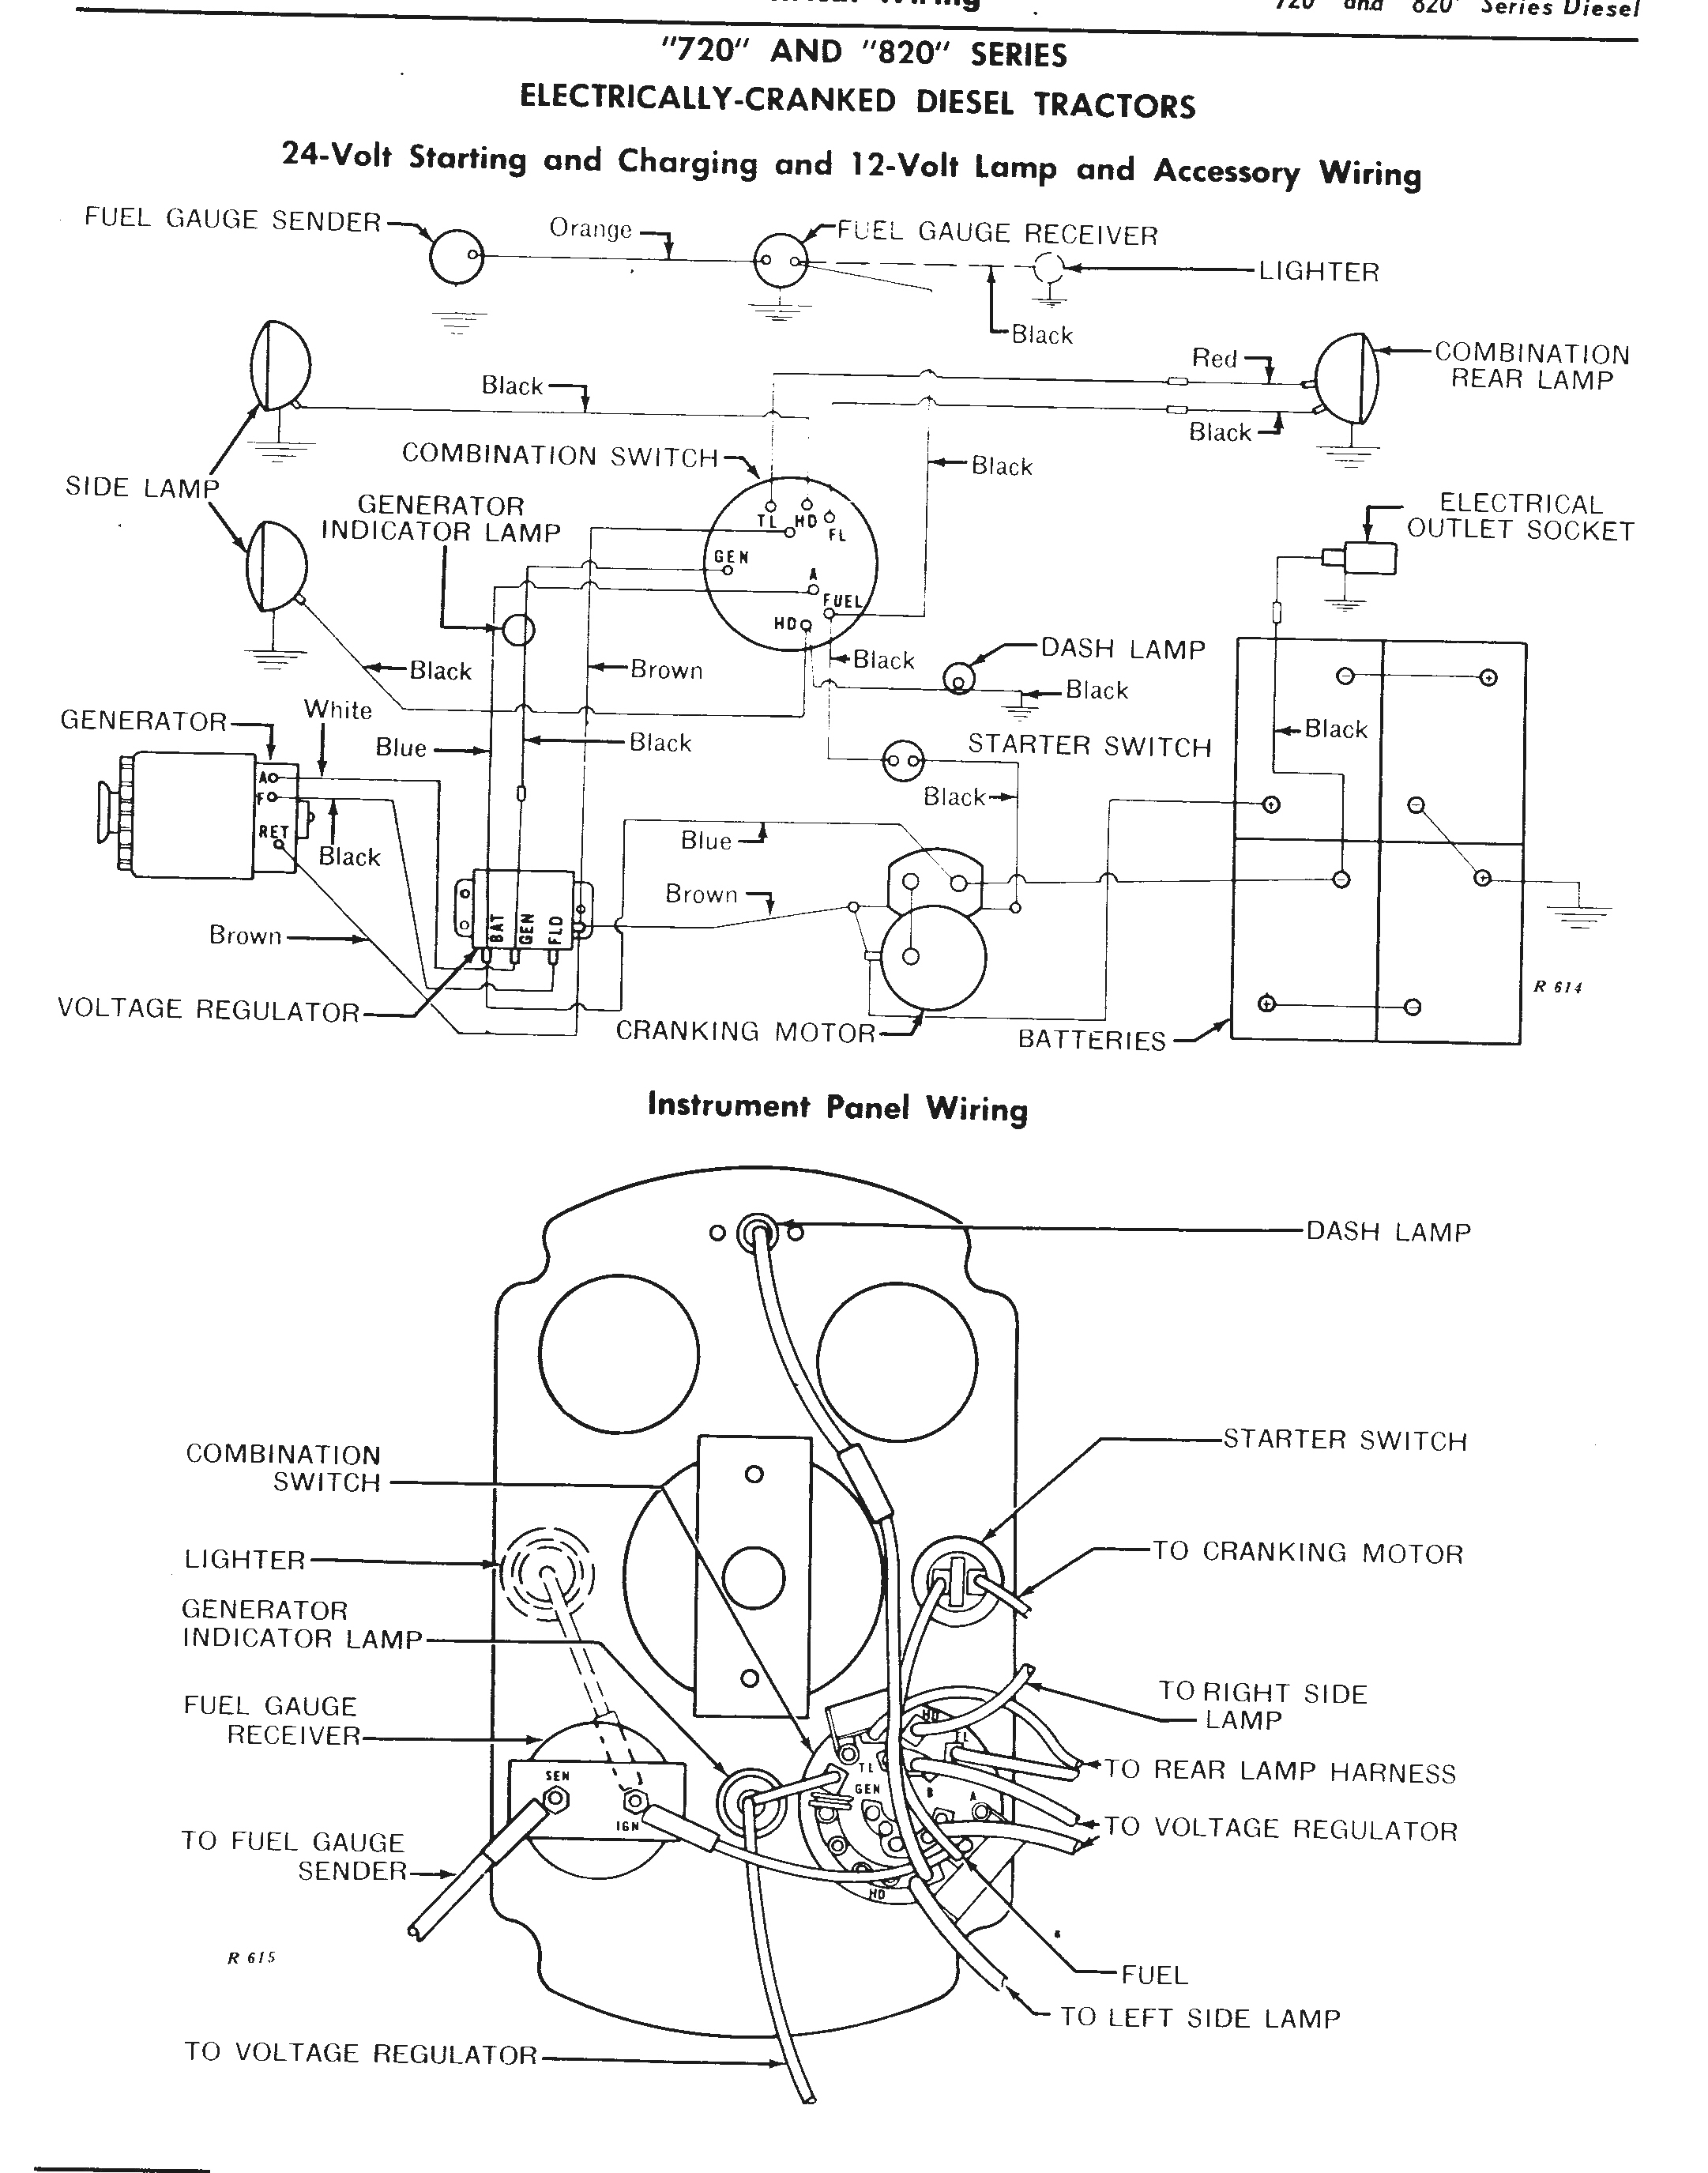 deere_24v_wiring the john deere 24 volt electrical system explained wiring diagram for john deere 310d backhoe at n-0.co